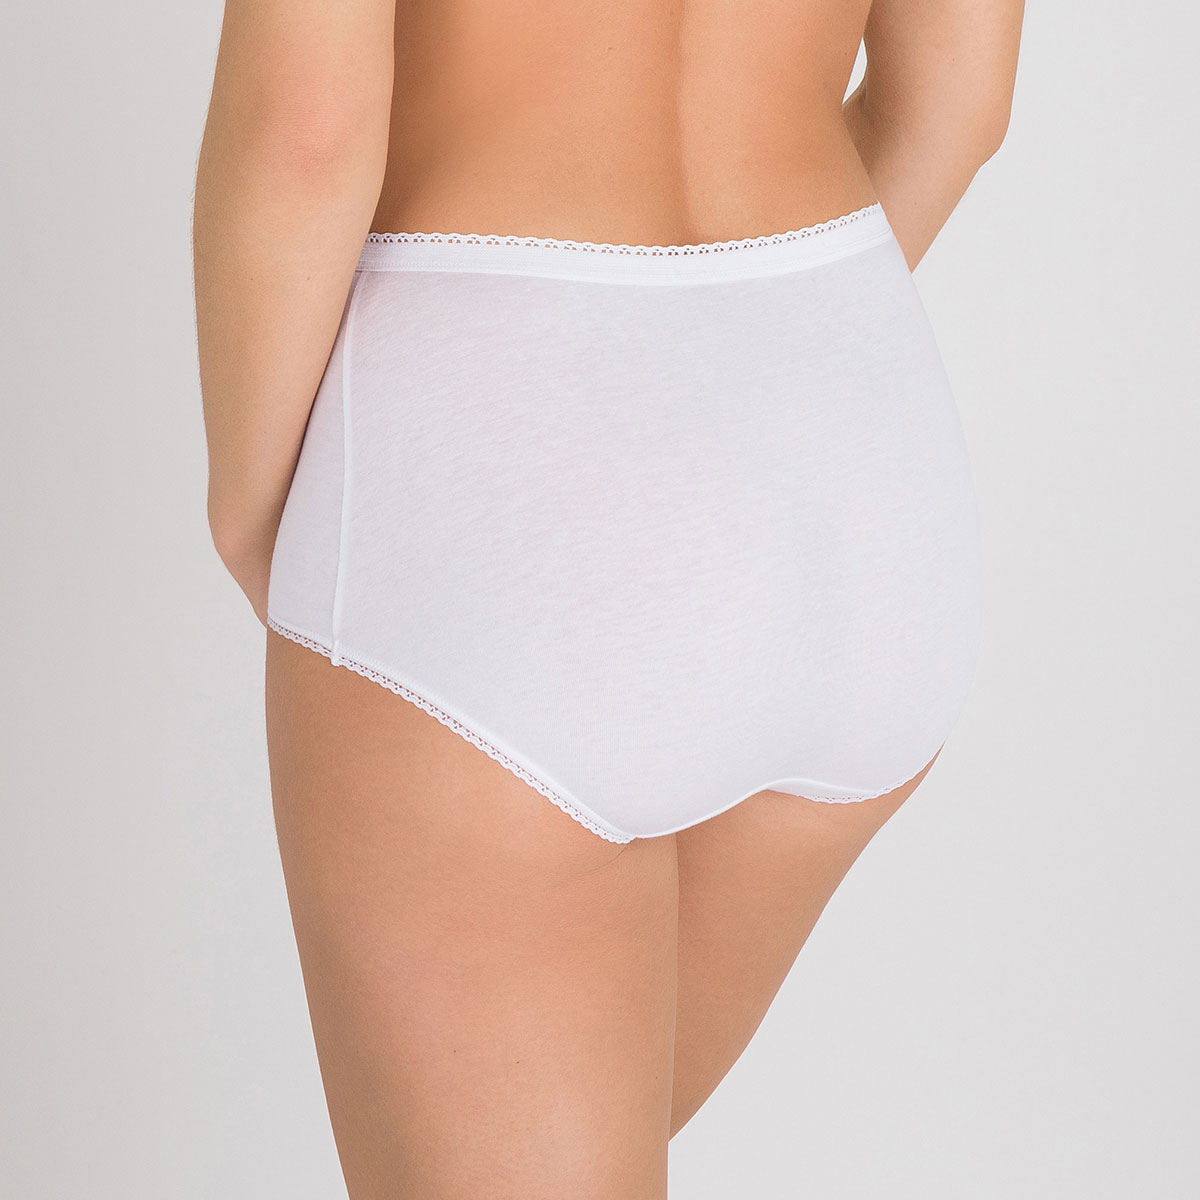 3 Cotton Maxi Briefs in white – Stretch Cotton-PLAYTEX